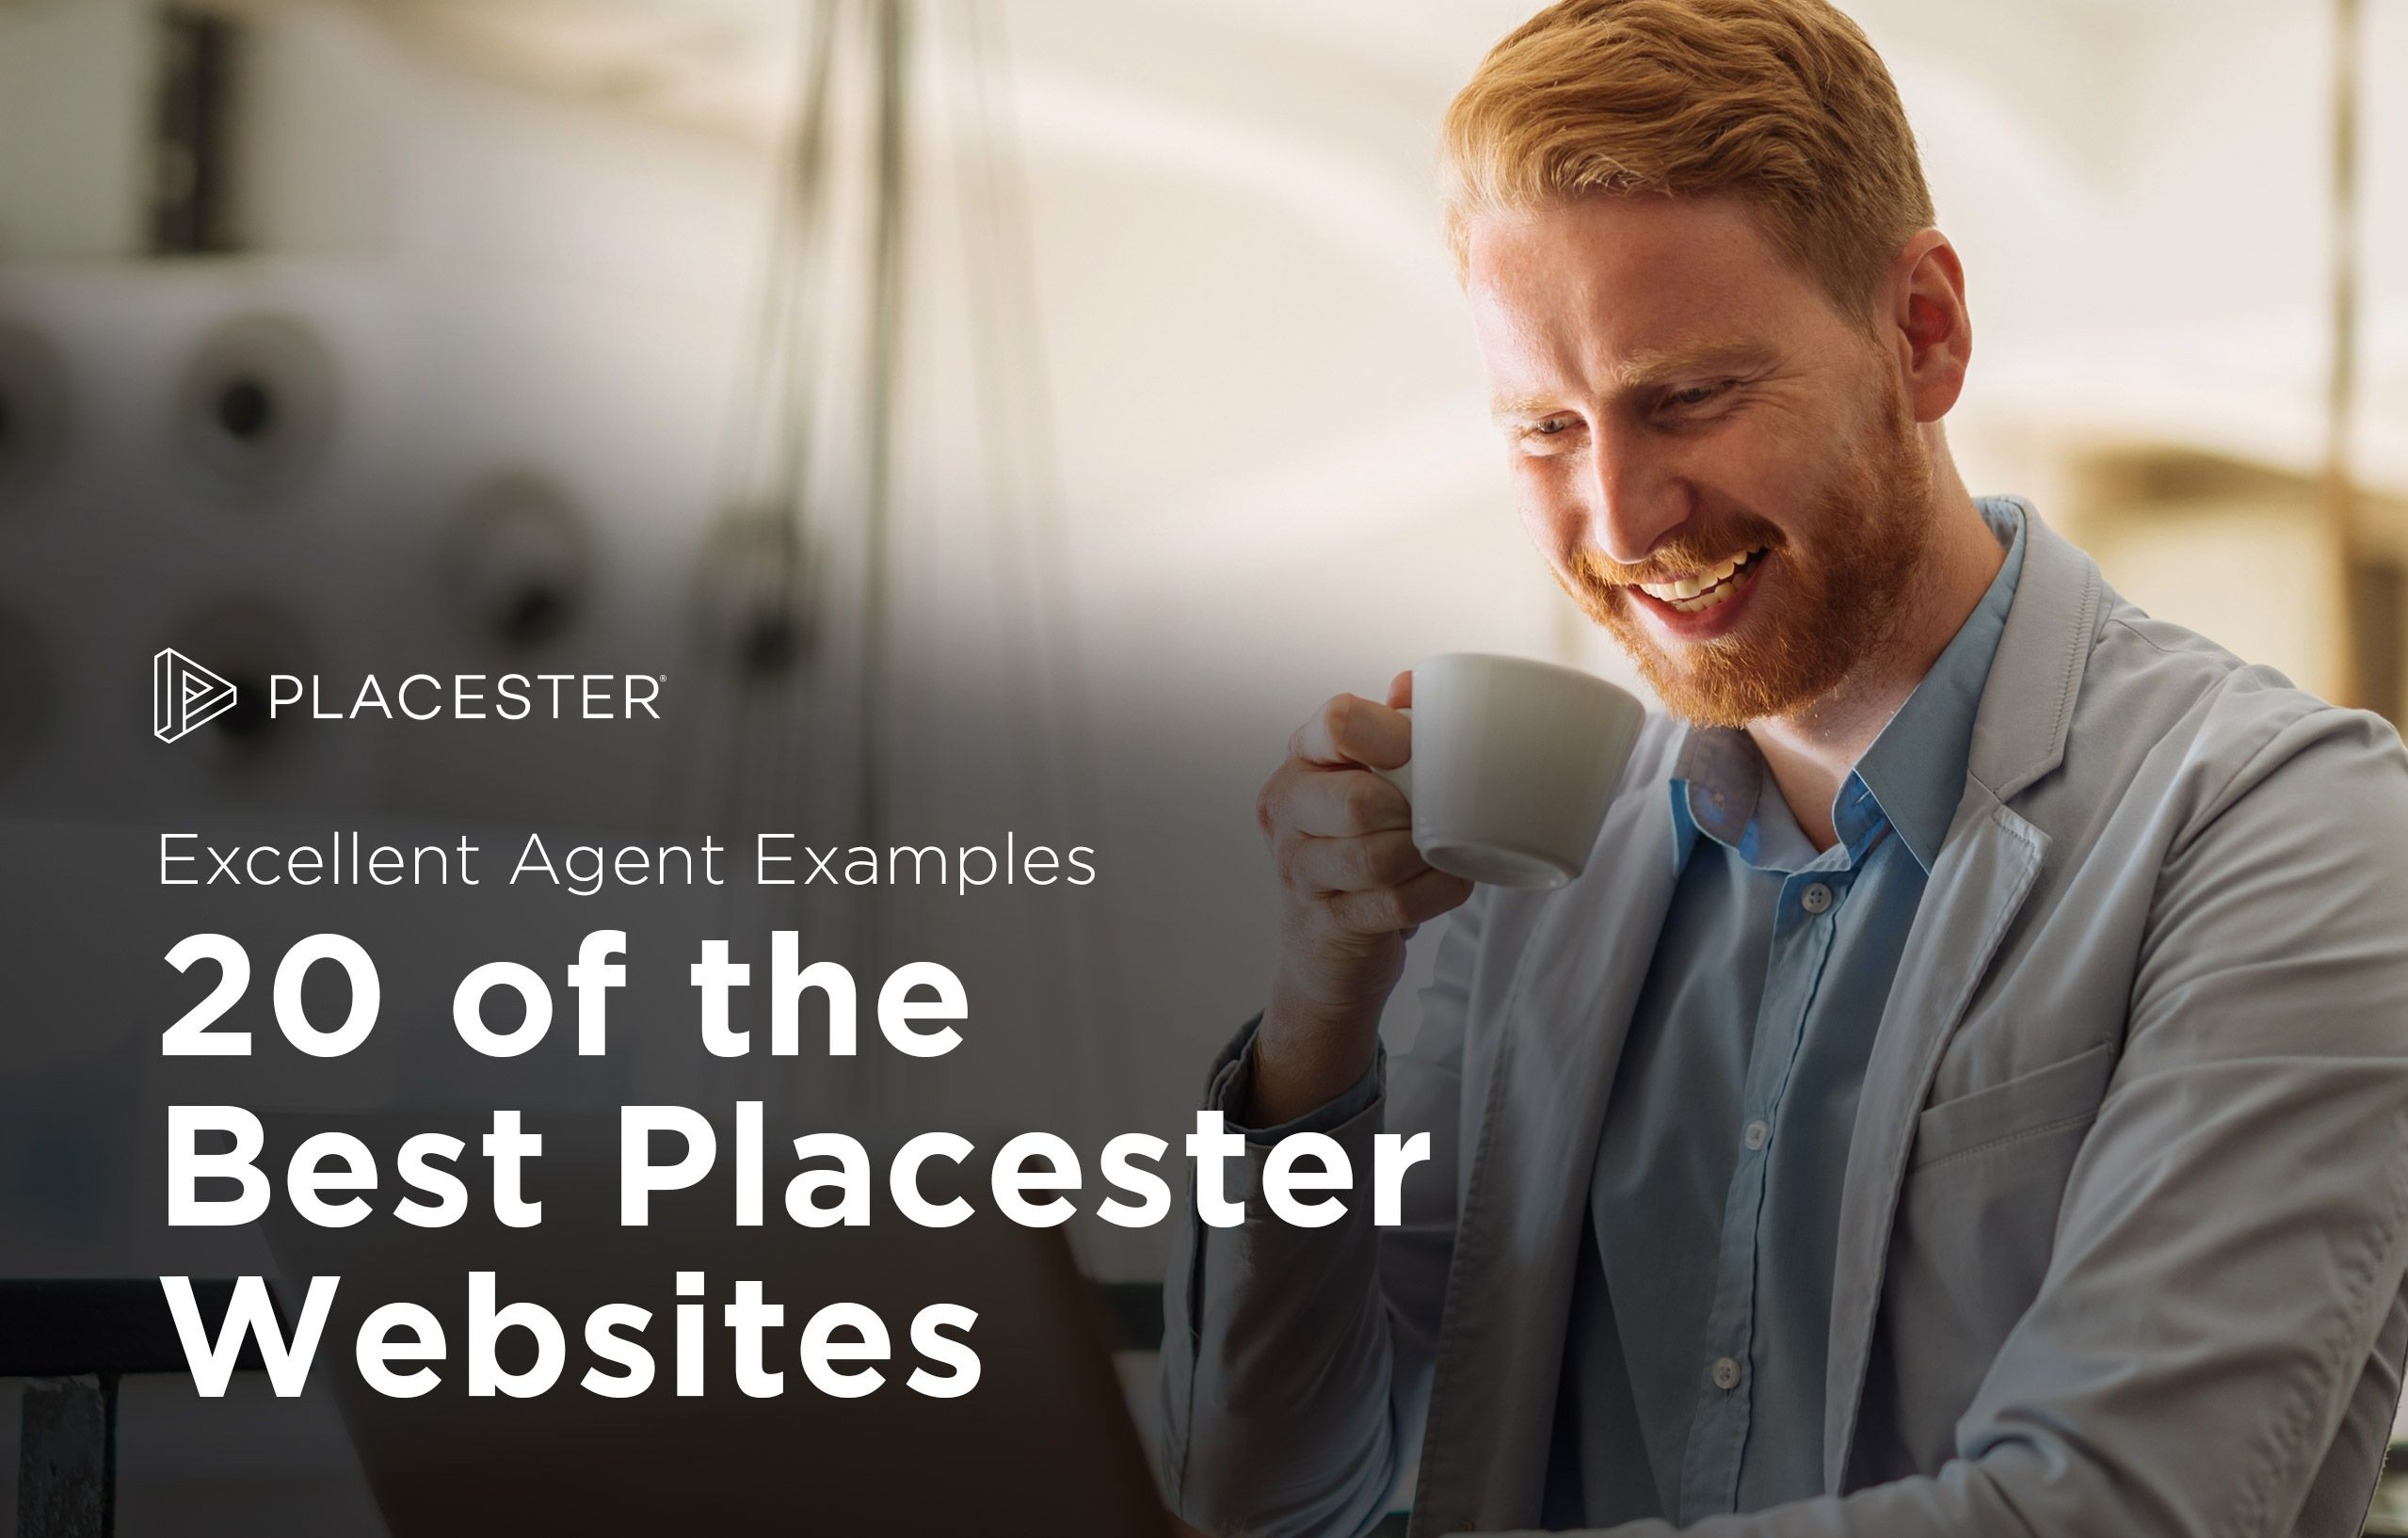 twenty placester real estate website examples can be found in this